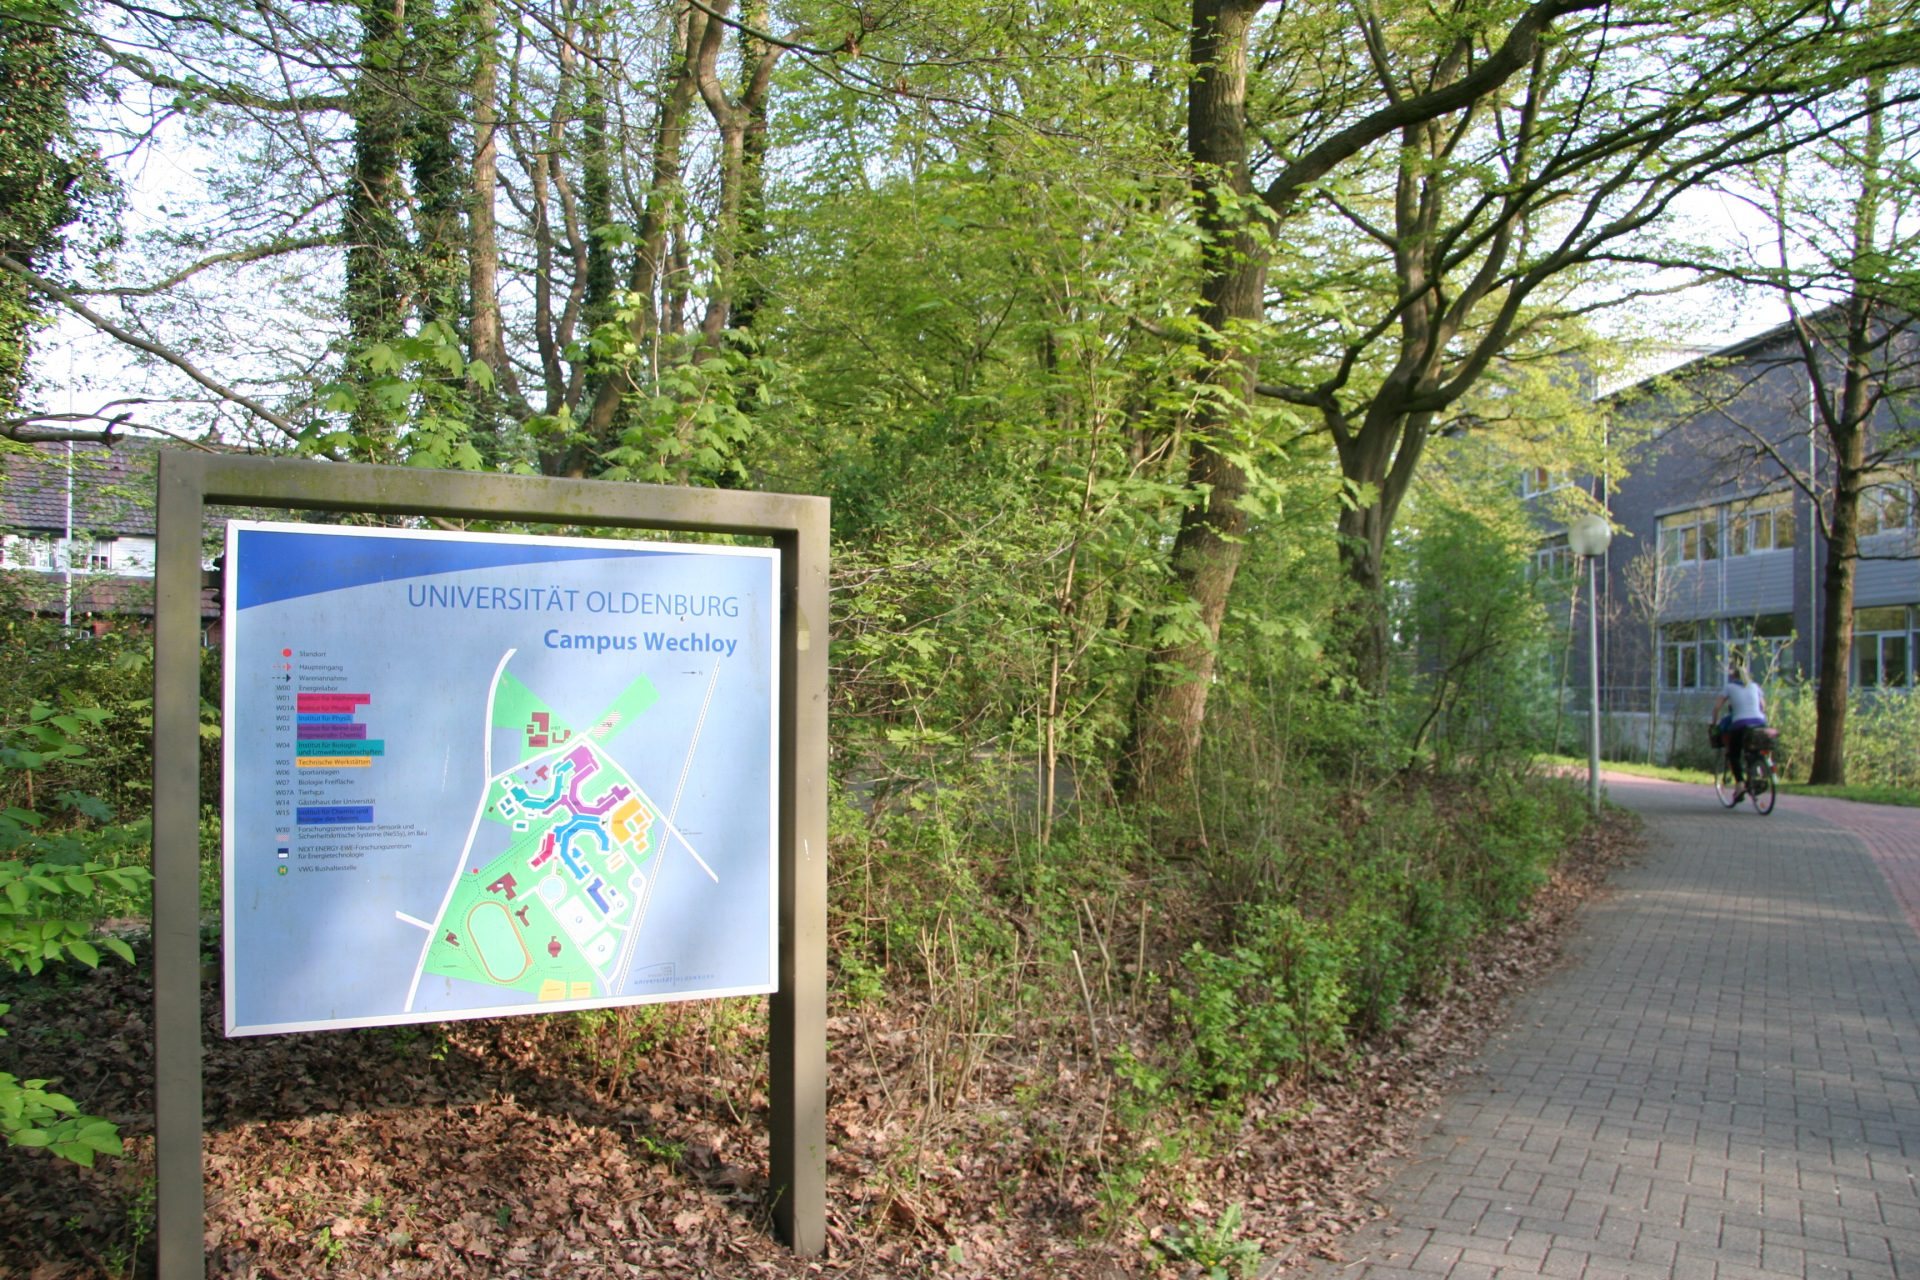 After cycling through the beautiful tunnel of oak trees (did I mention I get to do this every day?), I arrive at the science campus of the University of Oldenburg, and turn right at this sign to get to my office. Photo by Heidi Meudt.